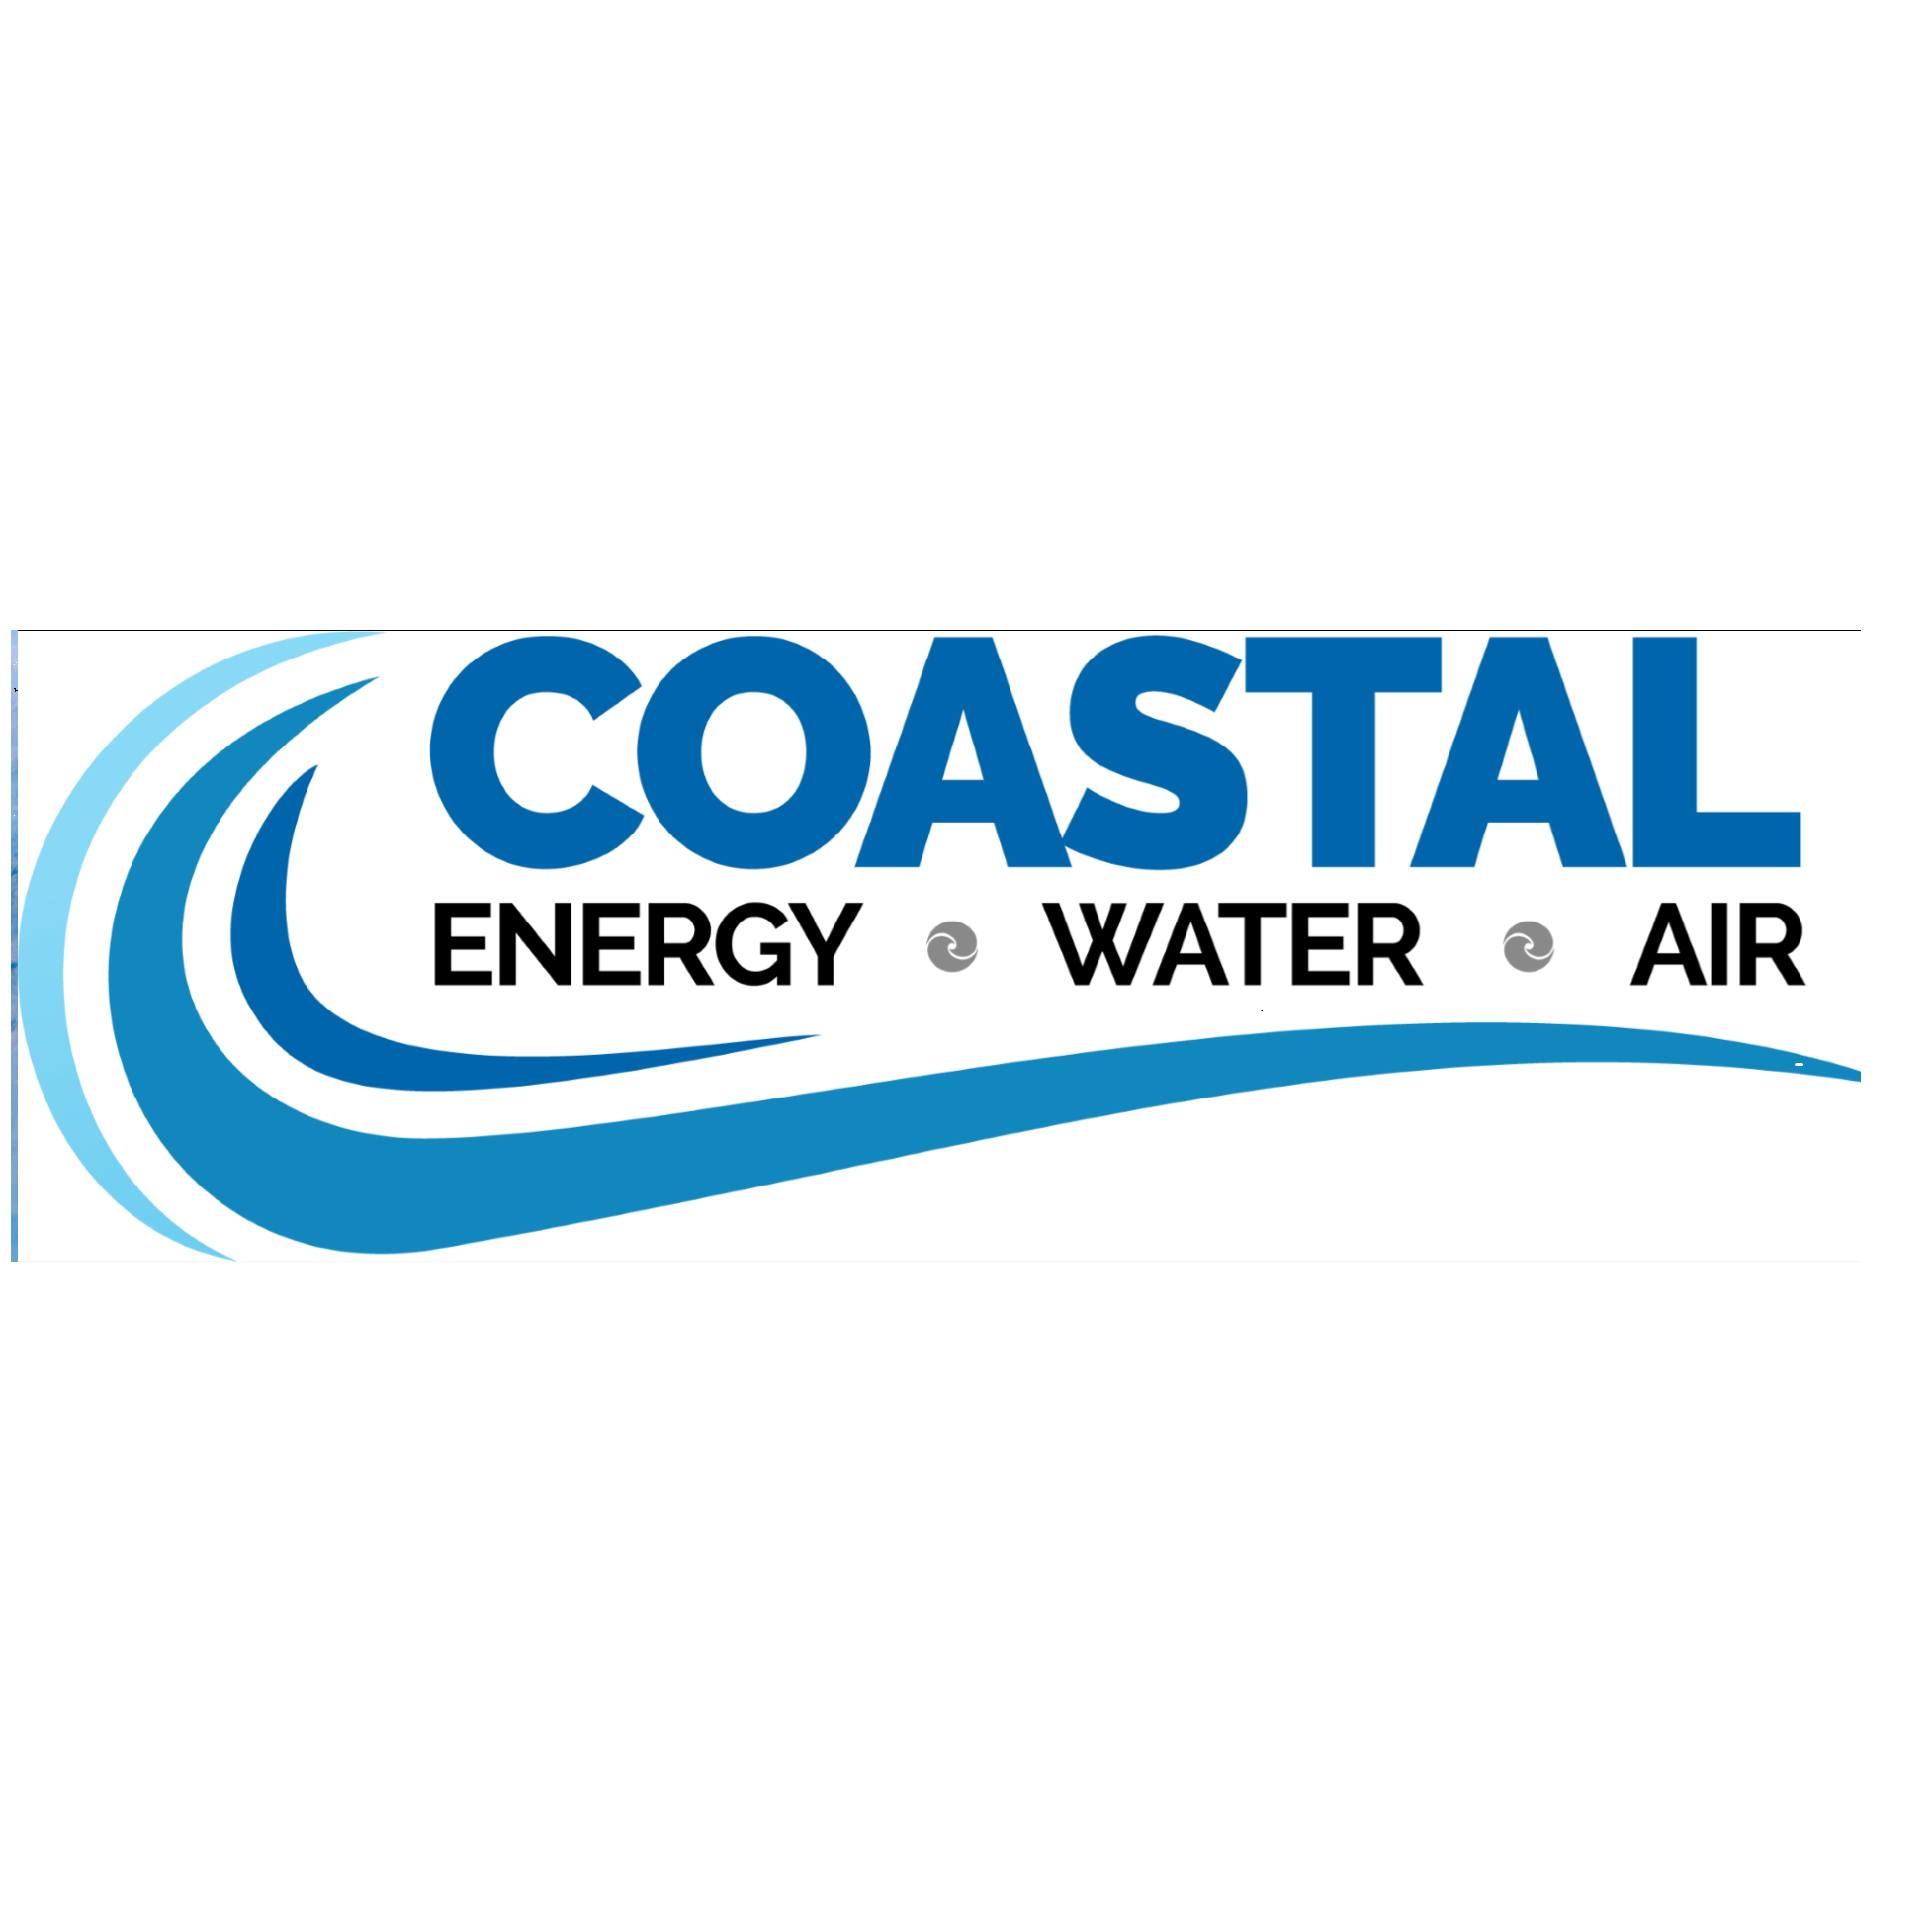 Coastal Energy Water and Air